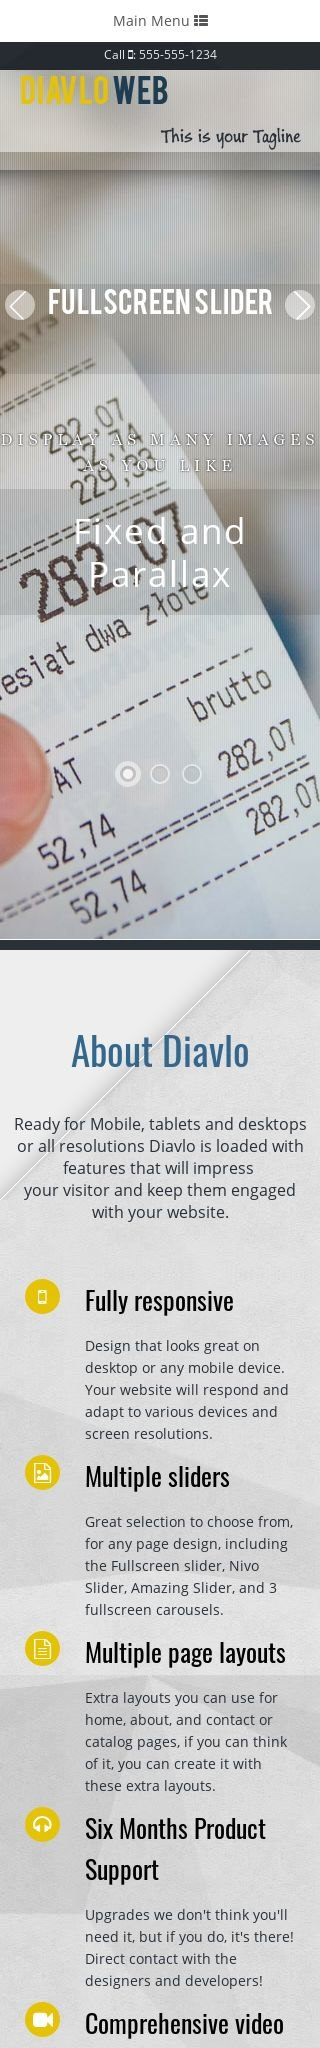 Mobile: Accounting Web Template